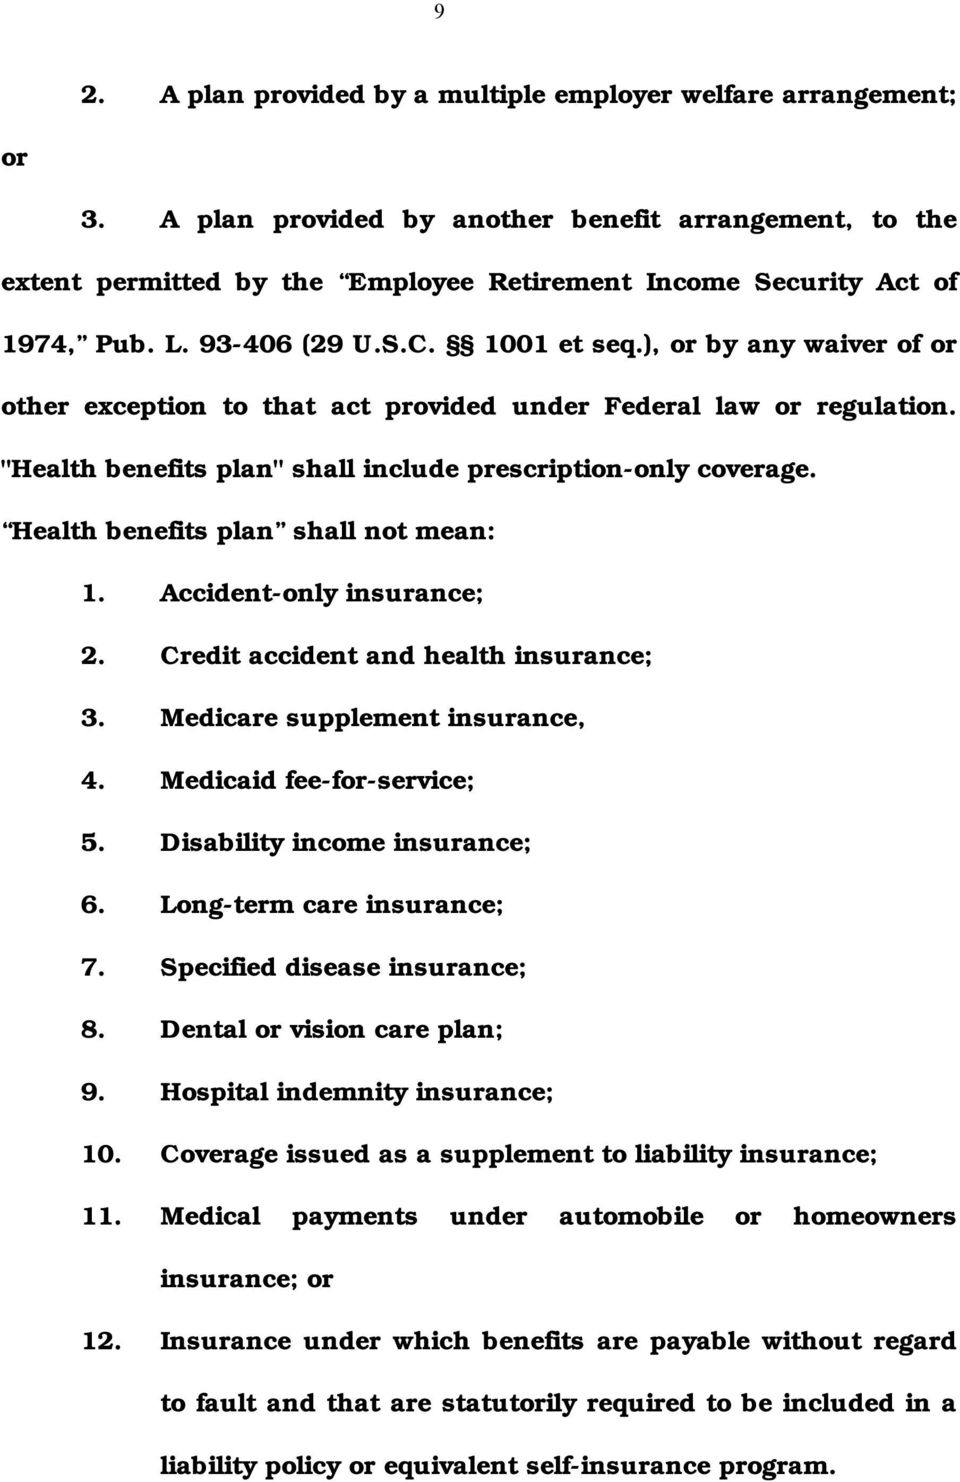 "), or by any waiver of or other exception to that act provided under Federal law or regulation. ""Health benefits plan"" shall include prescription-only coverage. Health benefits plan shall not mean: 1."